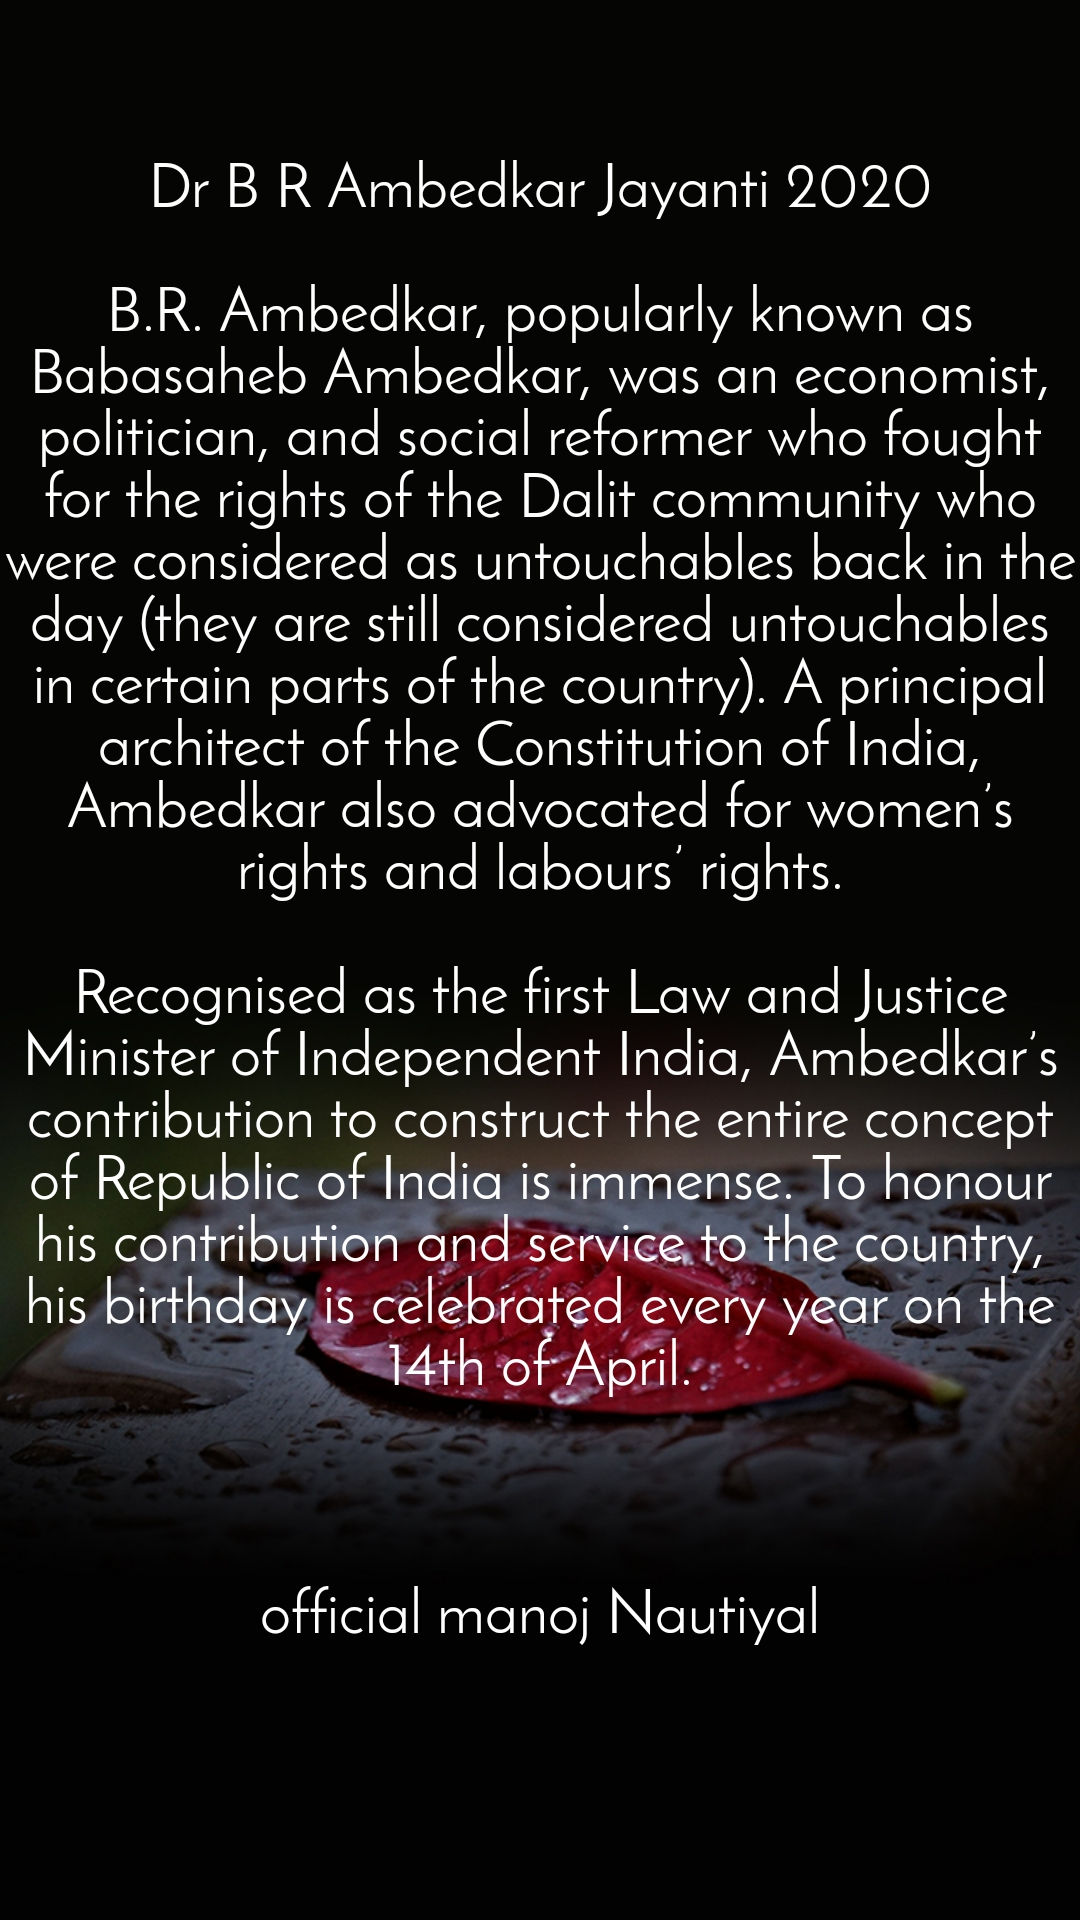 Dr B R Ambedkar Jayanti 2020  B.R. Ambedkar, popularly known as Babasaheb Ambedkar, was an economist, politician, and social reformer who fought for the rights of the Dalit community who were considered as untouchables back in the day (they are still considered untouchables in certain parts of the country). A principal architect of the Constitution of India, Ambedkar also advocated for women's rights and labours' rights.  Recognised as the first Law and Justice Minister of Independent India, Ambedkar's contribution to construct the entire concept of Republic of India is immense. To honour his contribution and service to the country, his birthday is celebrated every year on the 14th of April.    official manoj Nautiyal